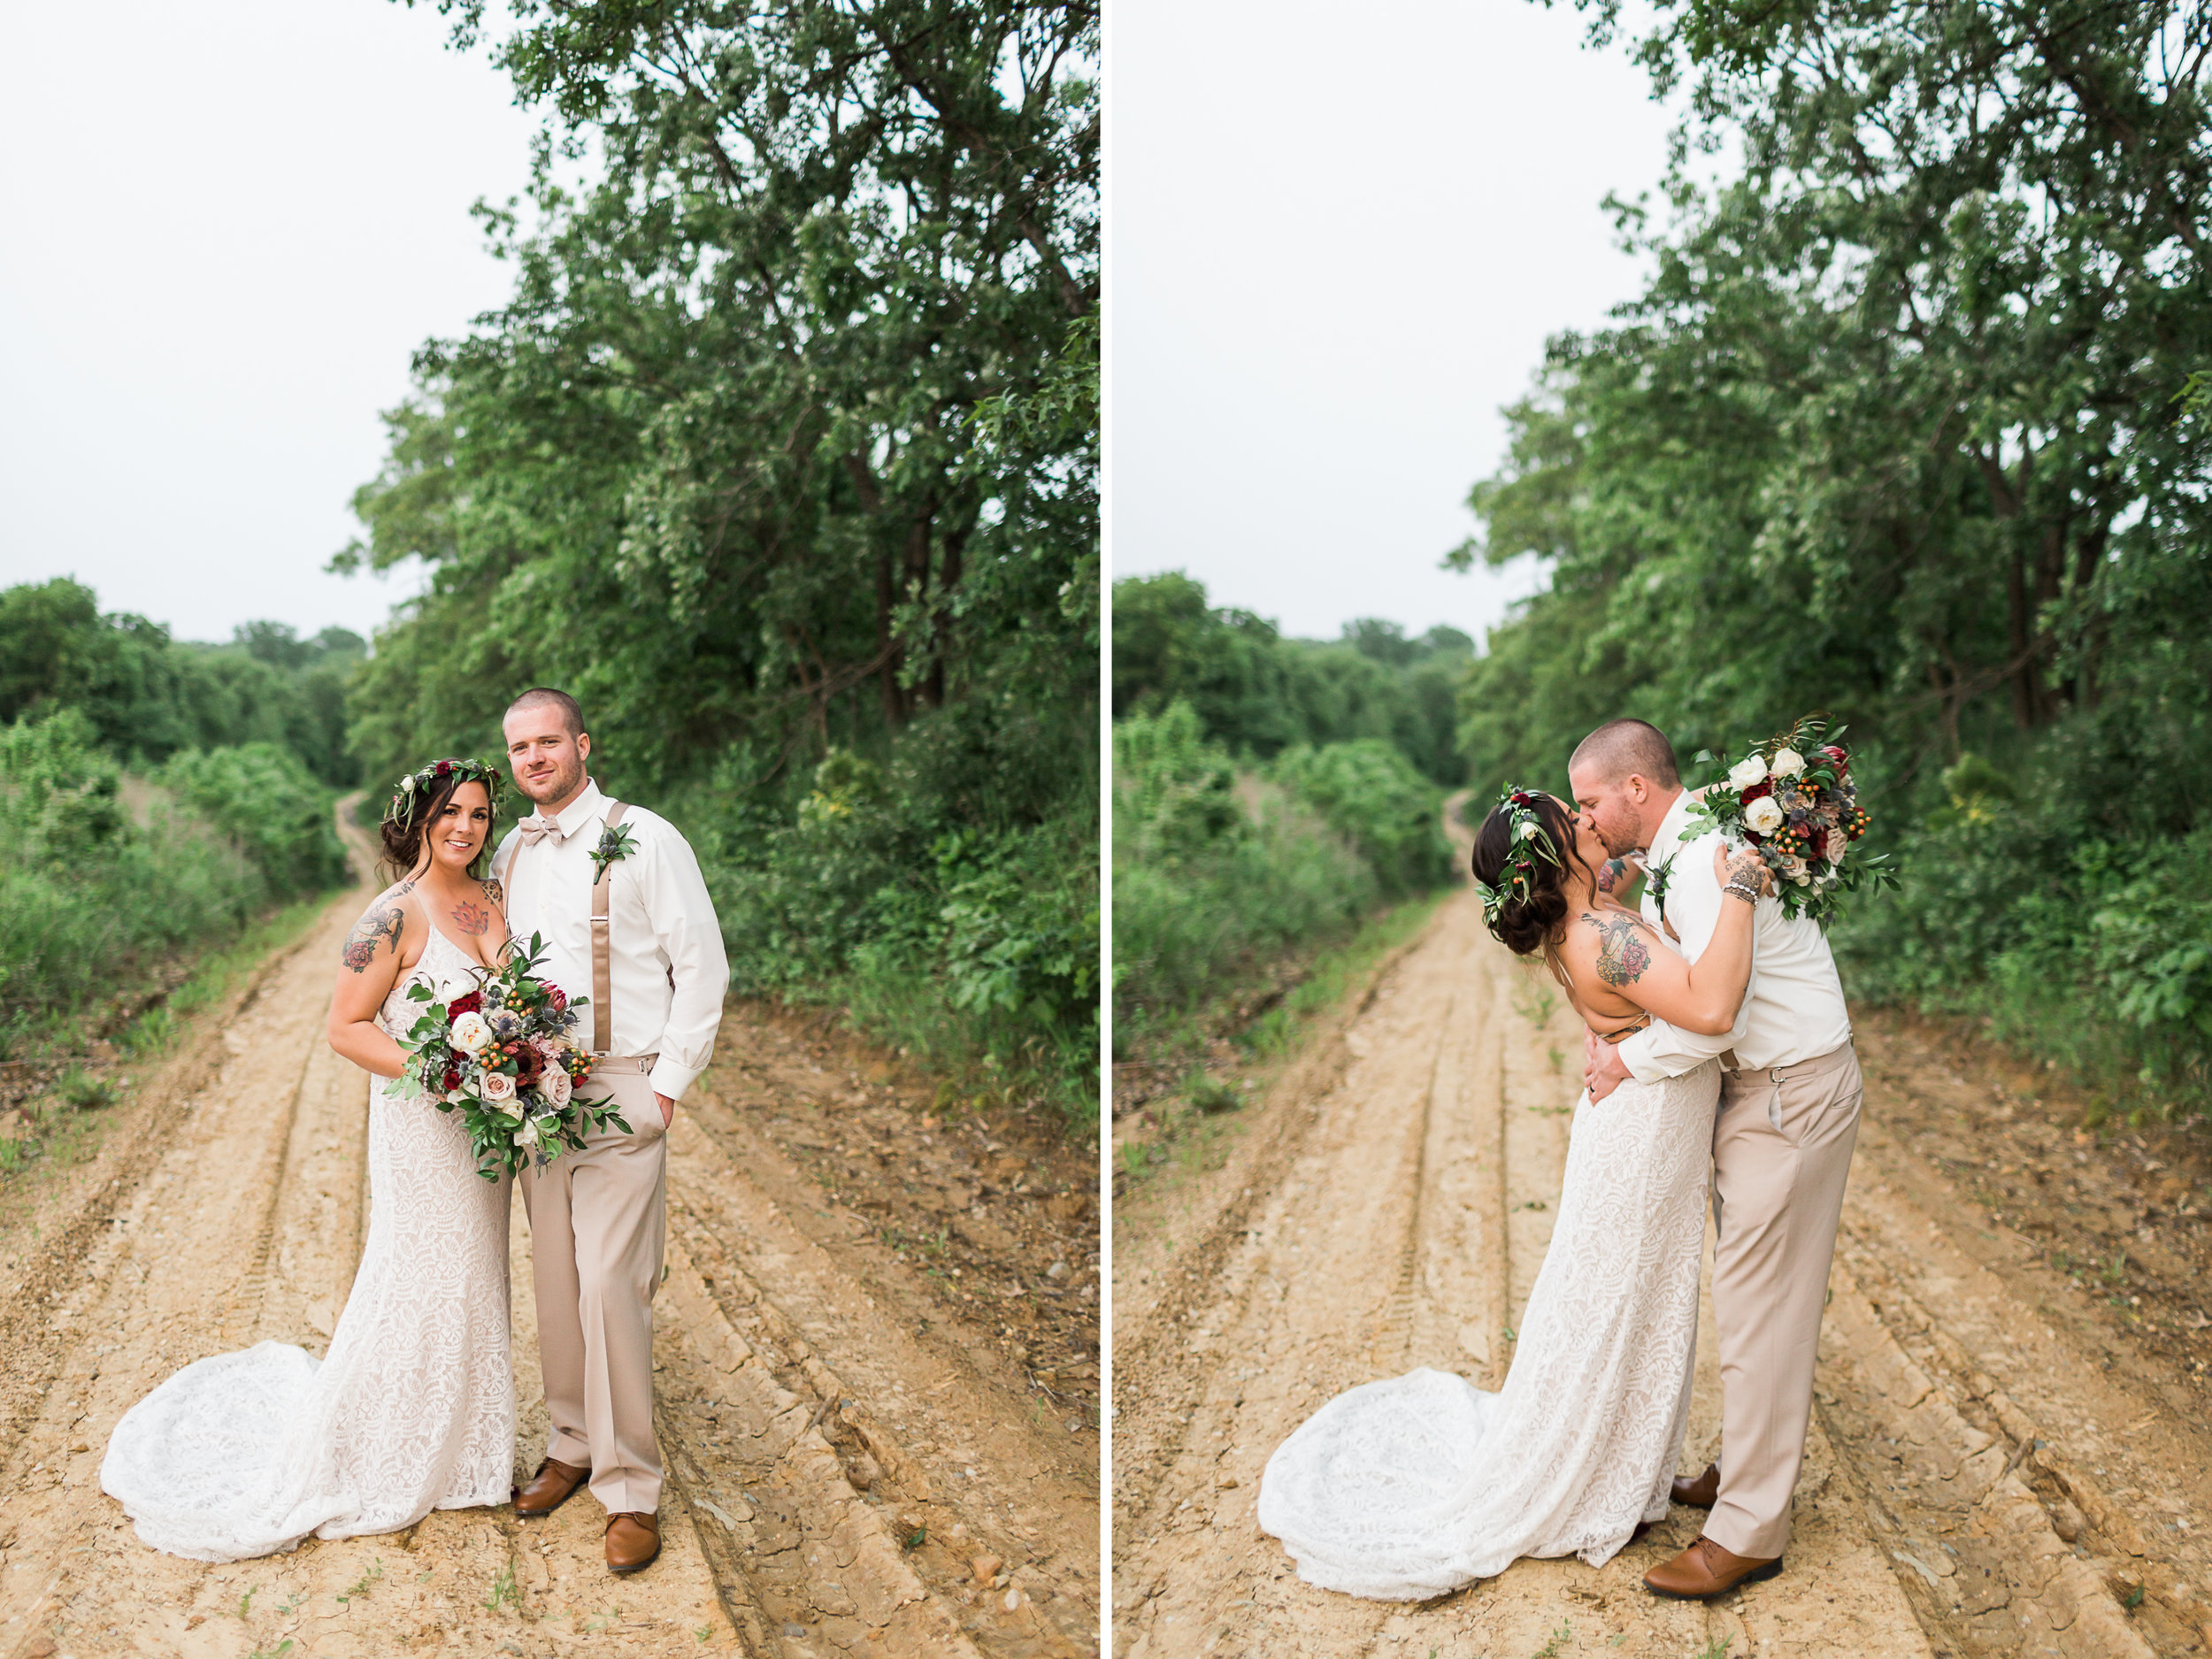 romanticbarnwedding-14.jpg